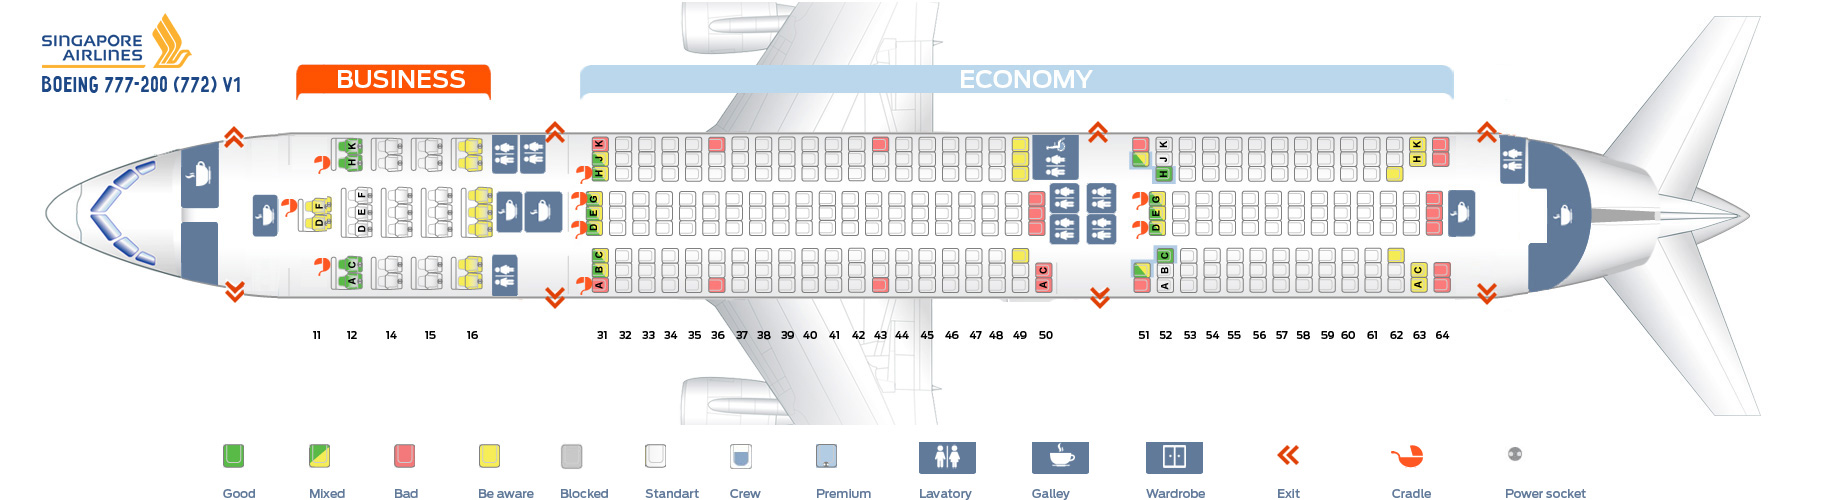 Seat Map Boeing 777 200 V1 Singapore Airlines